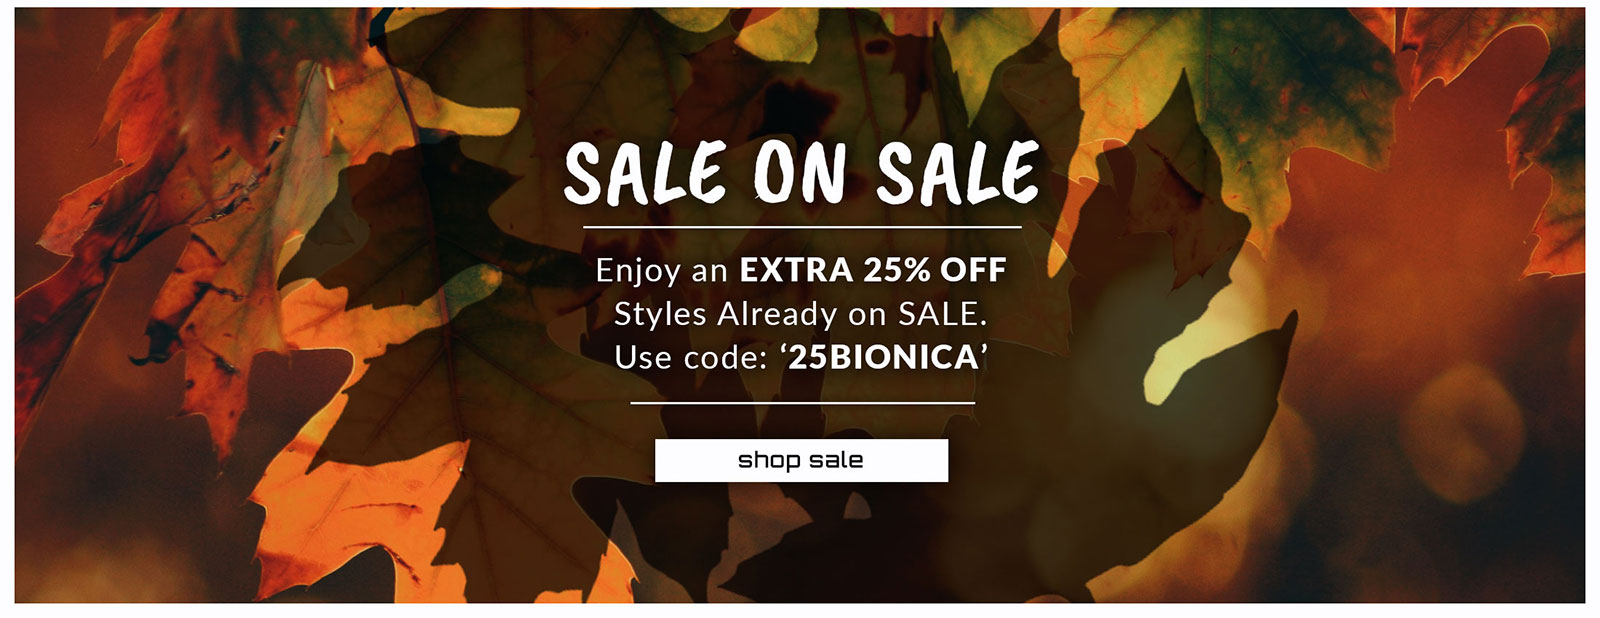 Sale on Sale. Enjoy an Extra 25% OFF Styles Already on Sale. Use code: 25BIONICA.  Shop sale.